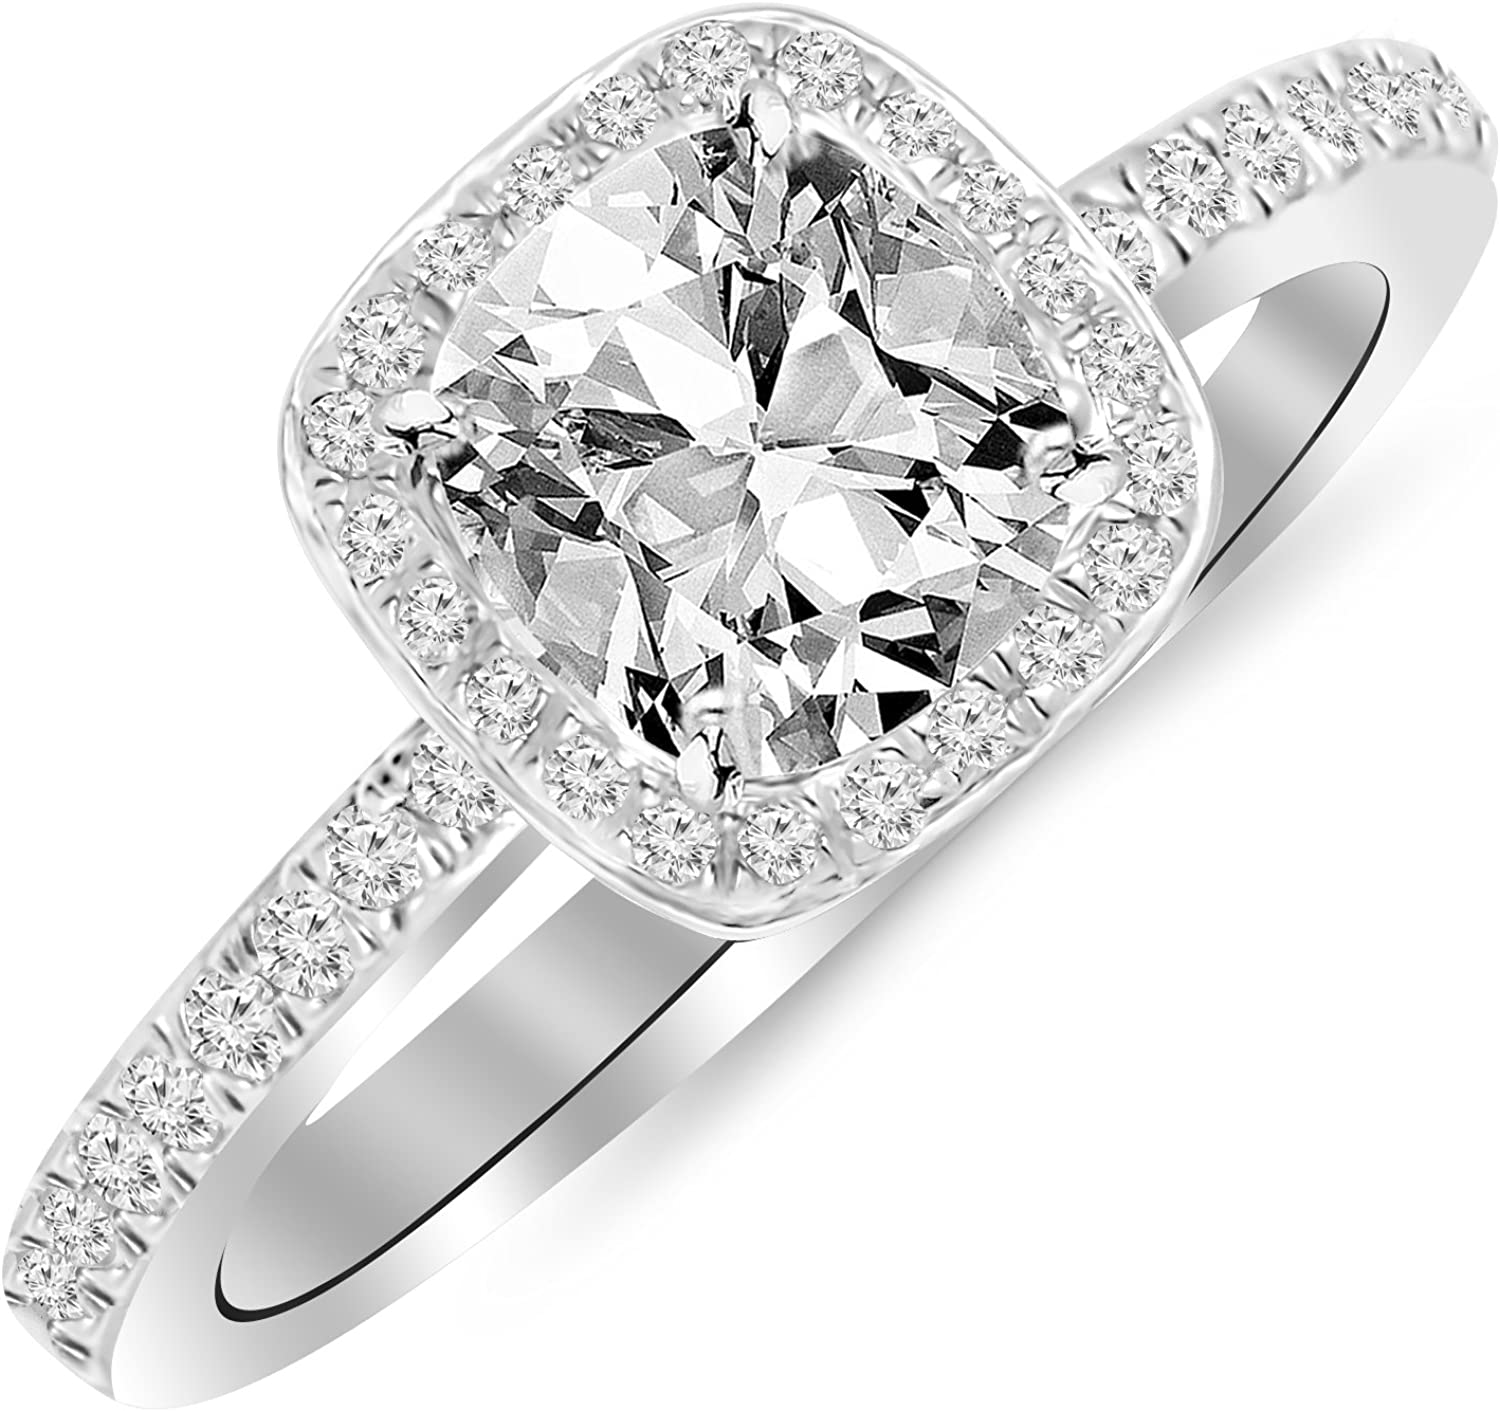 1 Carat t.w. 14K White Gold Classic Halo Style Cushion Shape Diamond Engagement Ring with a 3/4 Ct Forever Brilliant Cushion Moissanite Center